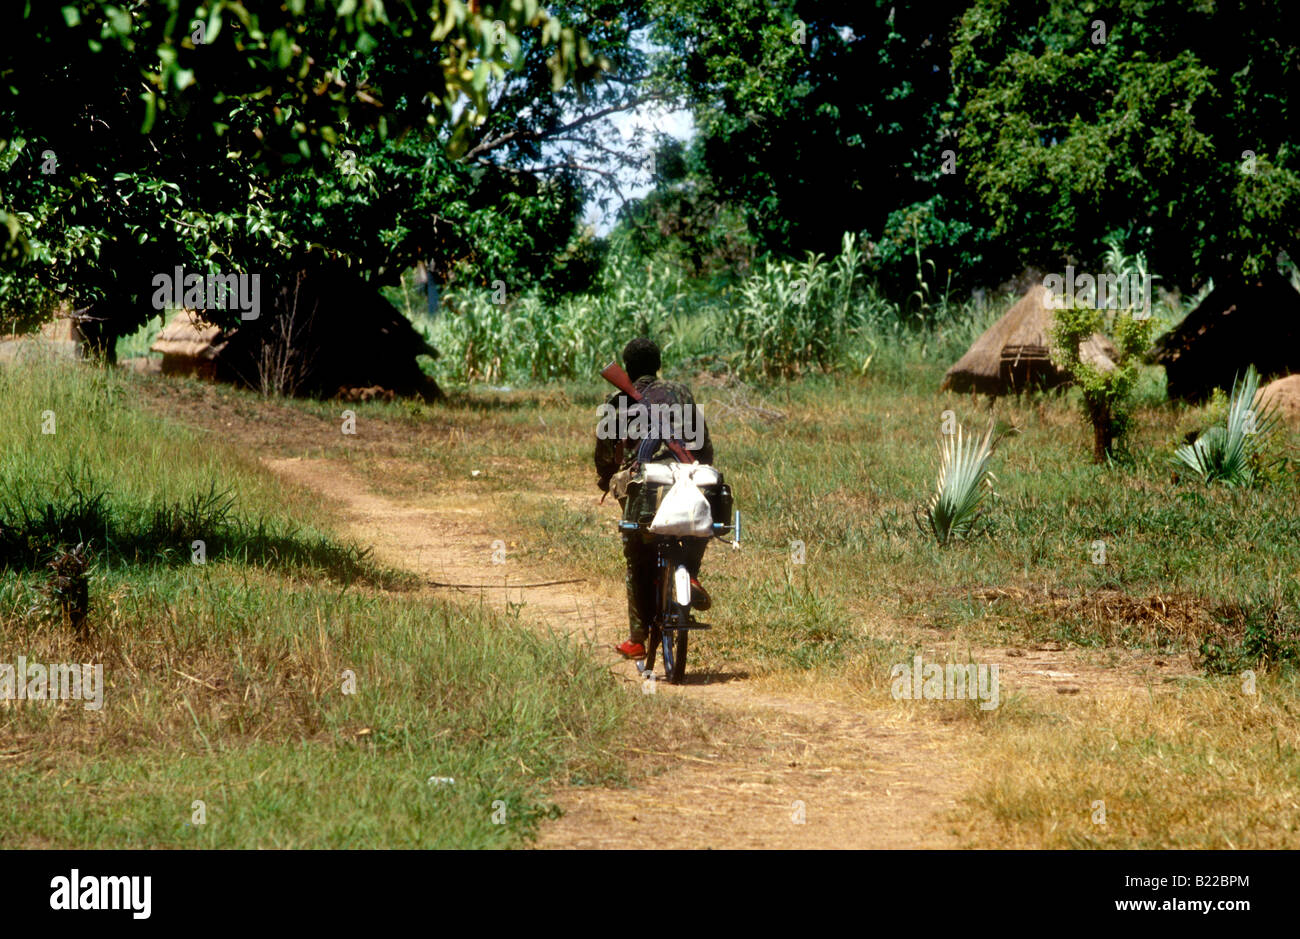 Soldier in Southern Sudan, Africa cycles through a village with a gun on his back - Stock Image